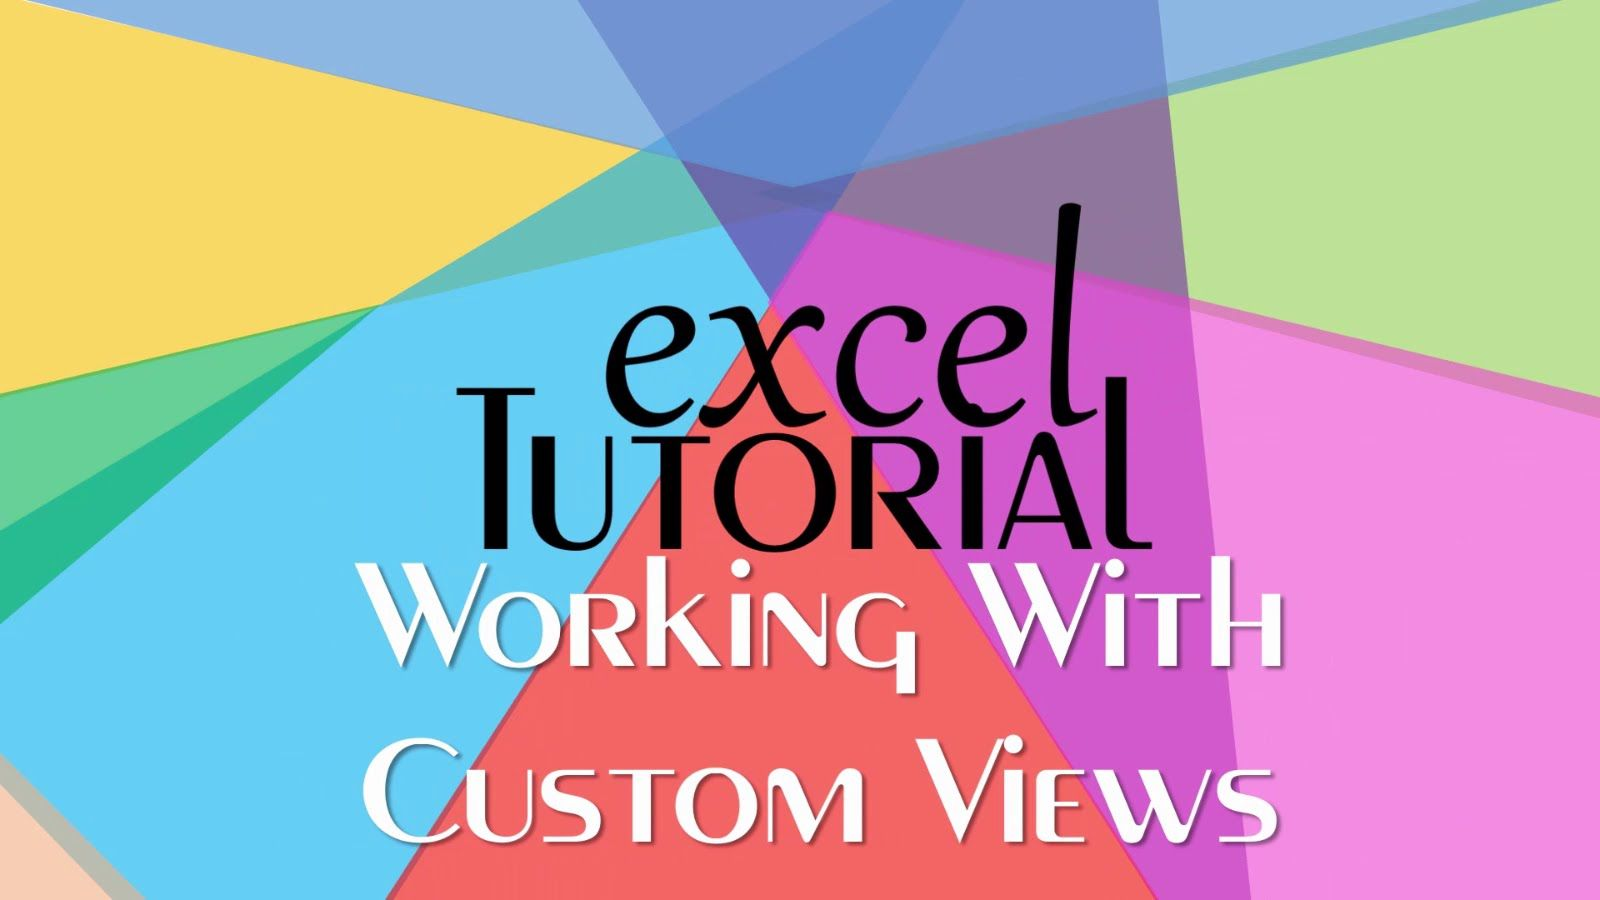 Excel 2016 Tutorials How to Create and Use Custom Views